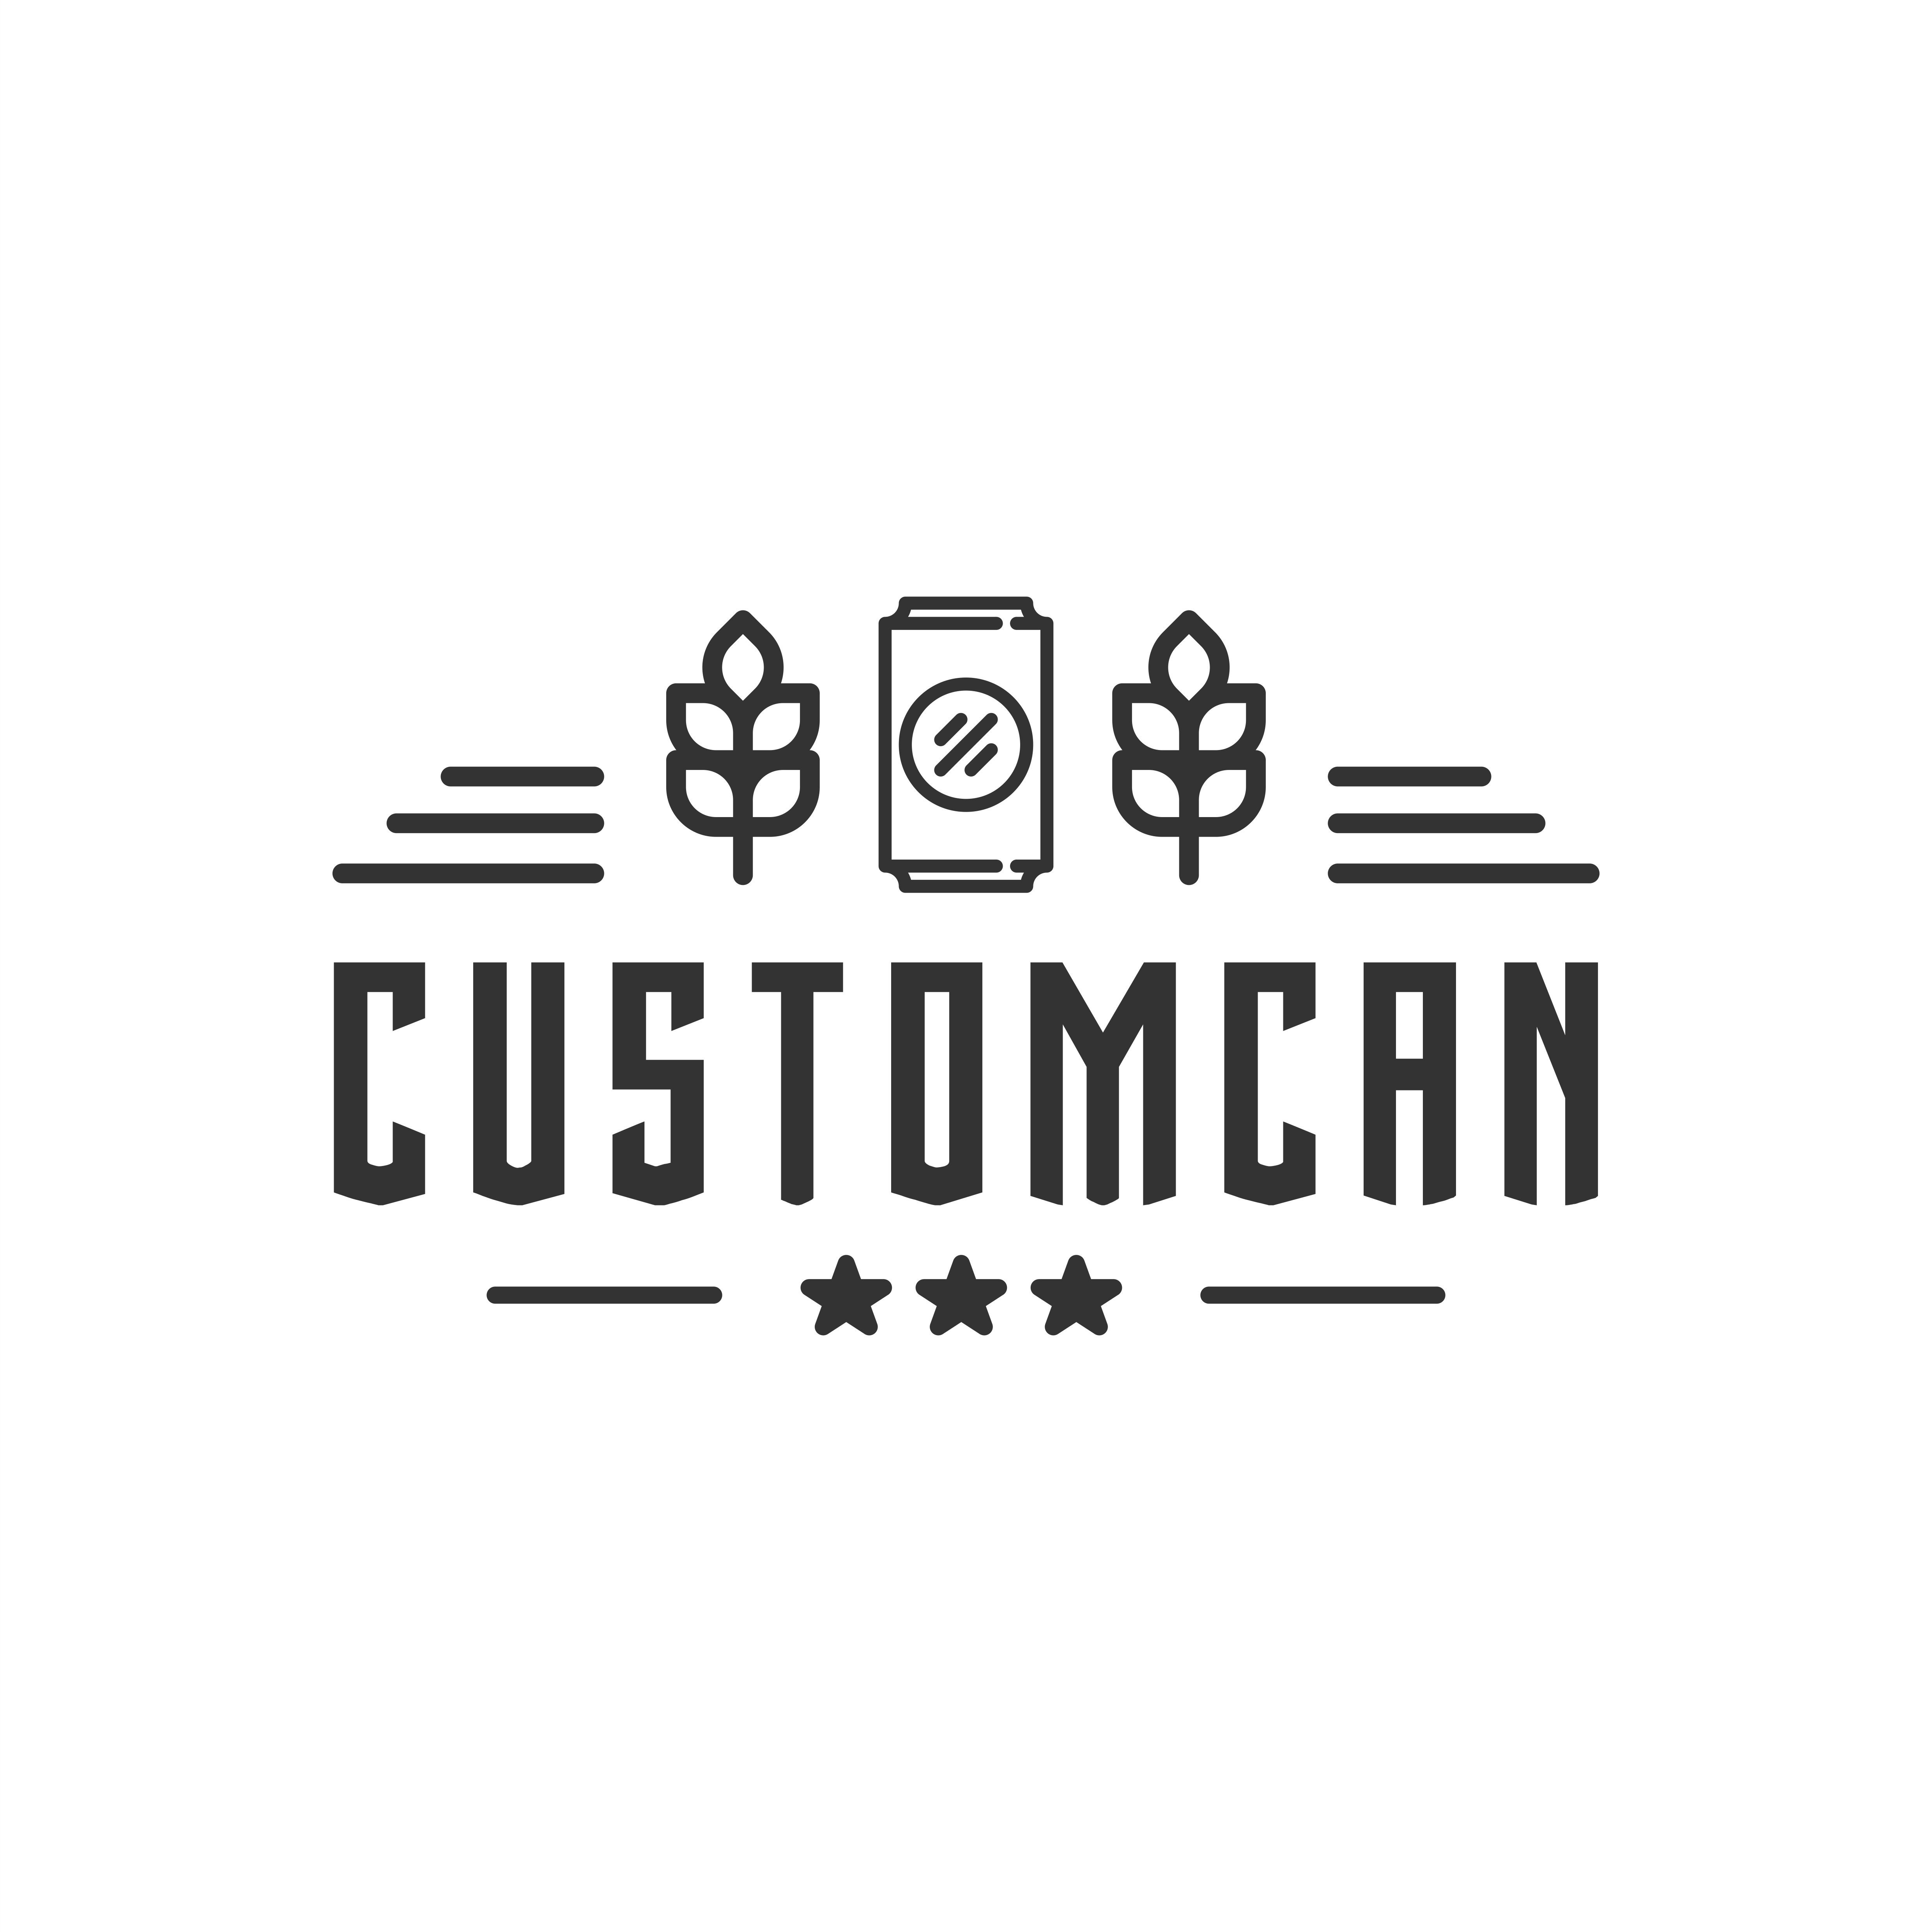 Custom Beer Cans lookng for a fun logo!